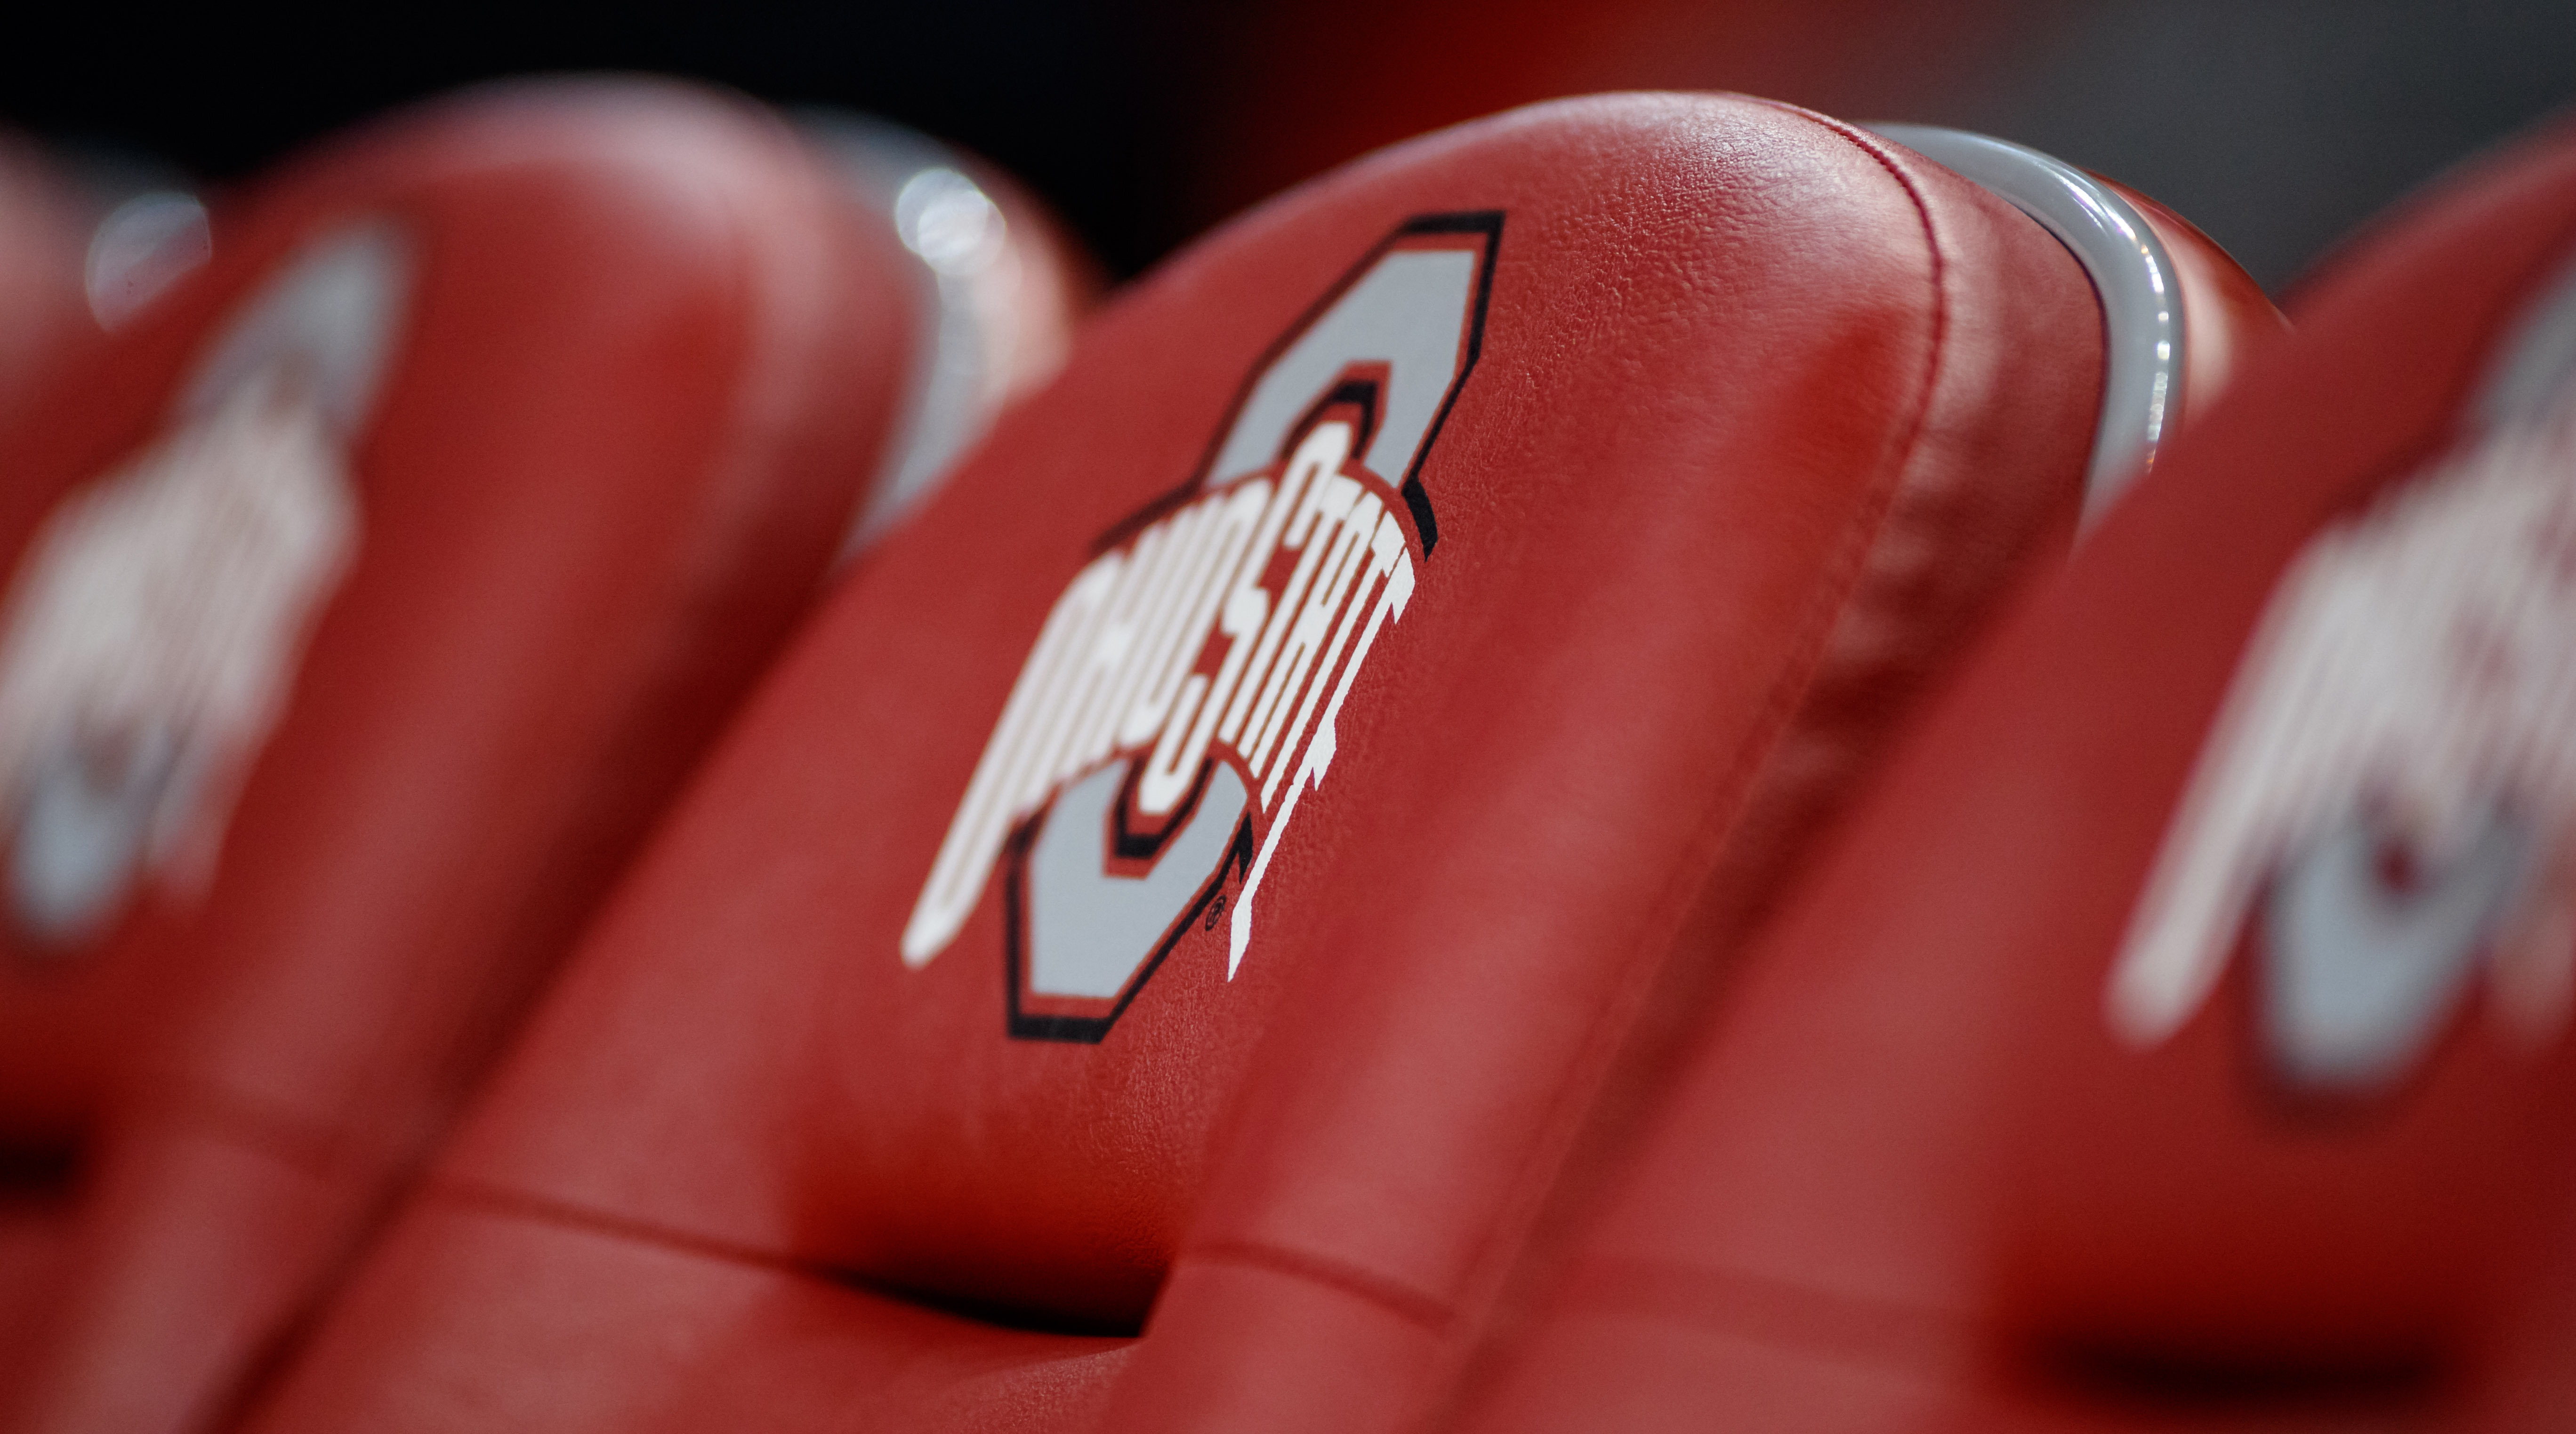 ohio-state-former-student-report-doctor-sexual-misconduct